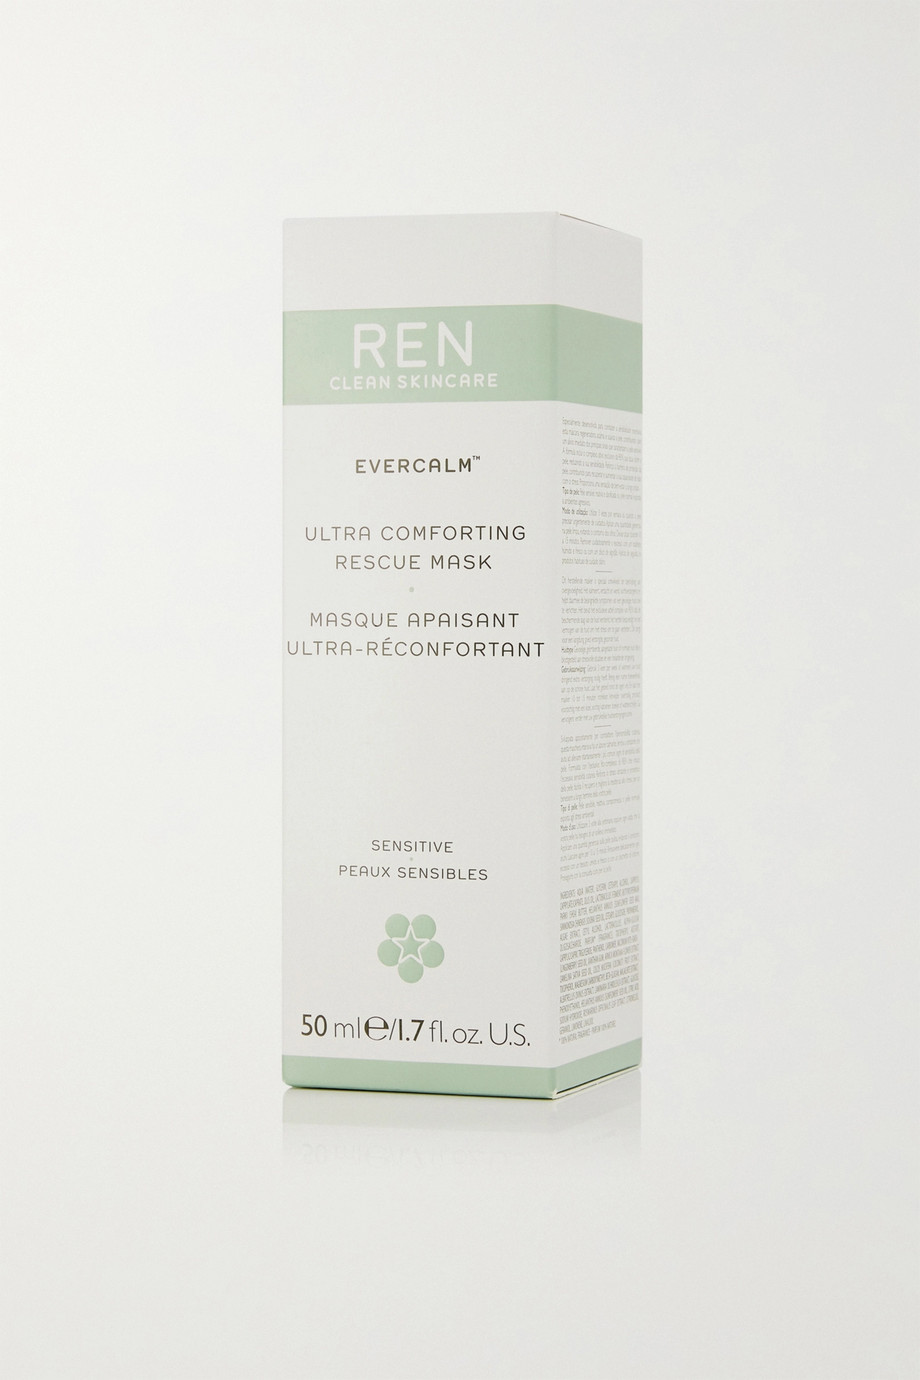 REN Clean Skincare Evercalm™ Ultra Comforting Rescue Mask, 50ml